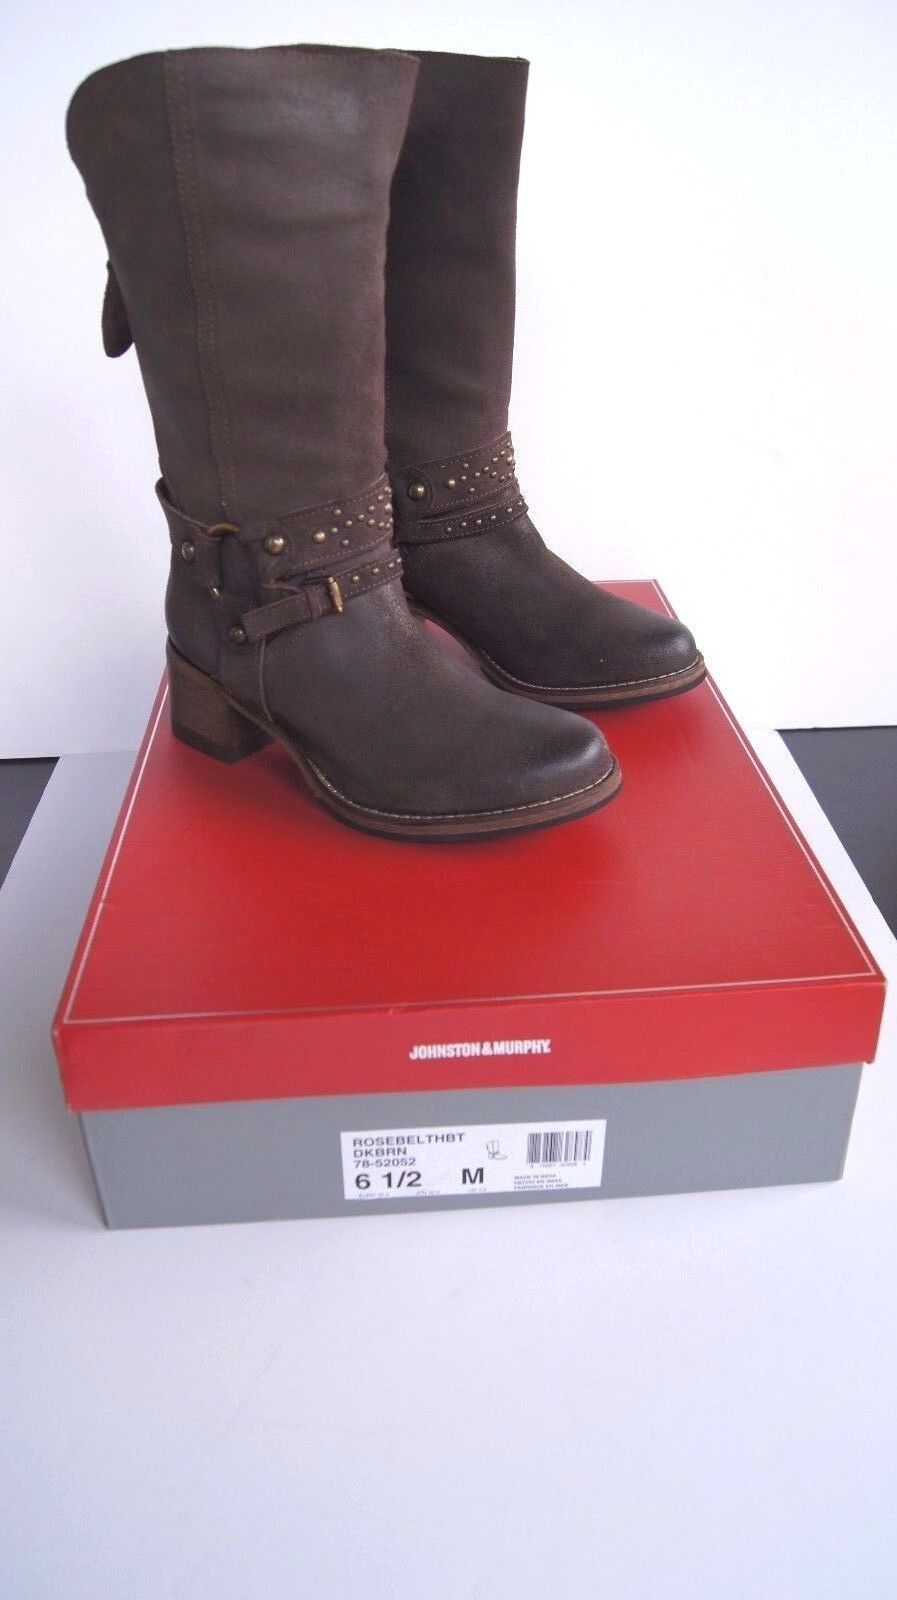 Johnston & Murphy Boots Women's Vero Cuoio Rosebel Dark Brown Heel Boots 6.5 NEW